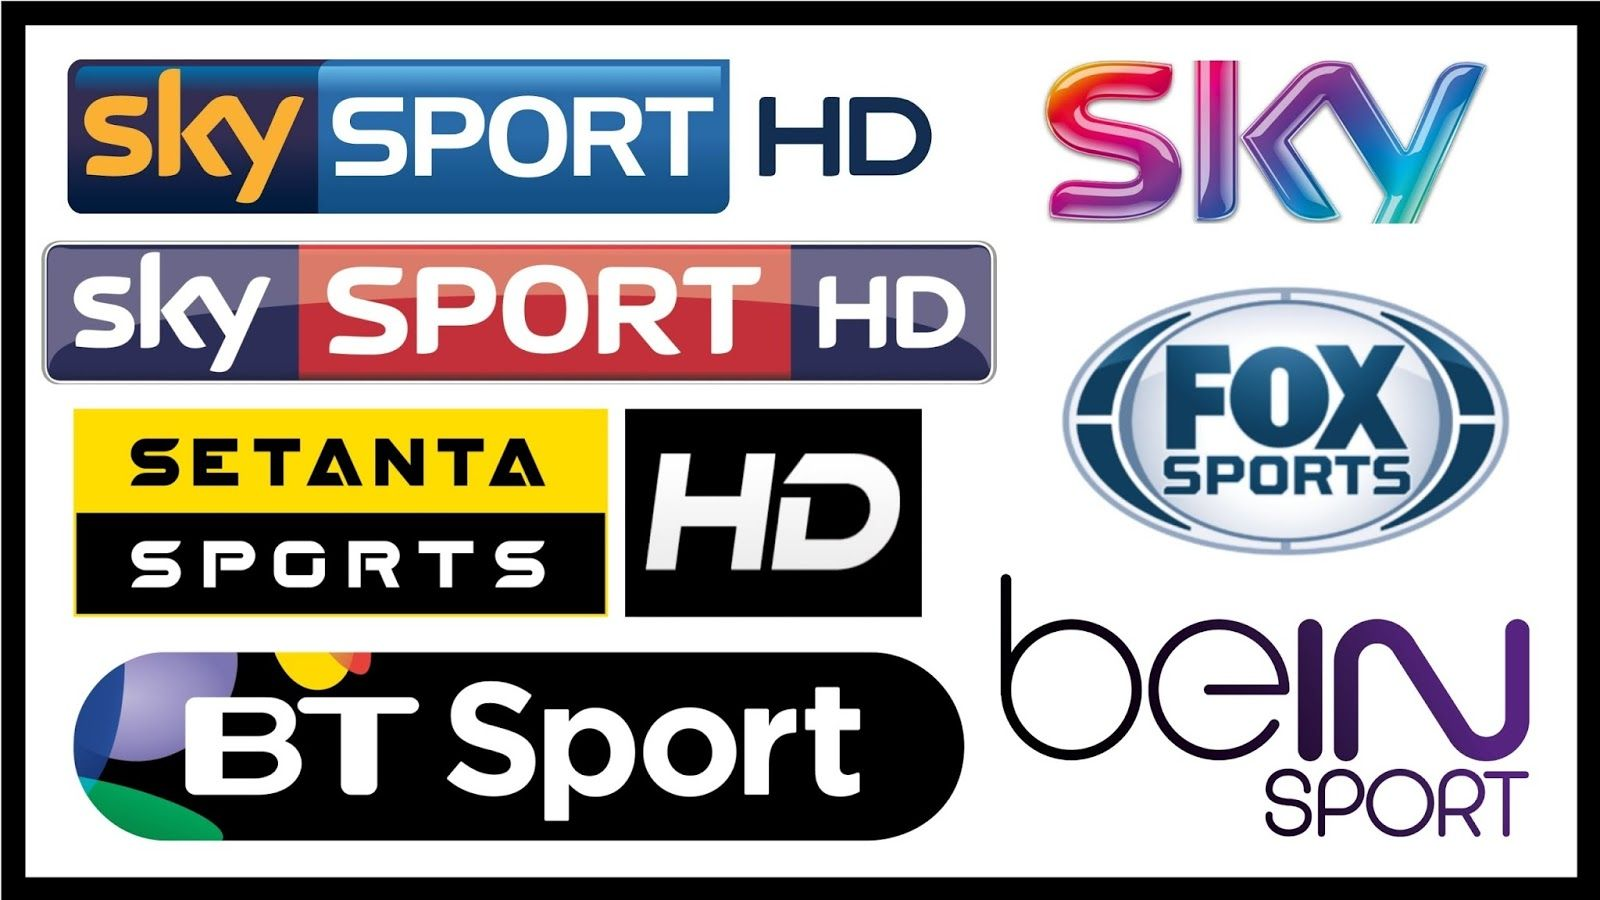 All Type Sports Watch or Broadcast Live TV Events - Sports